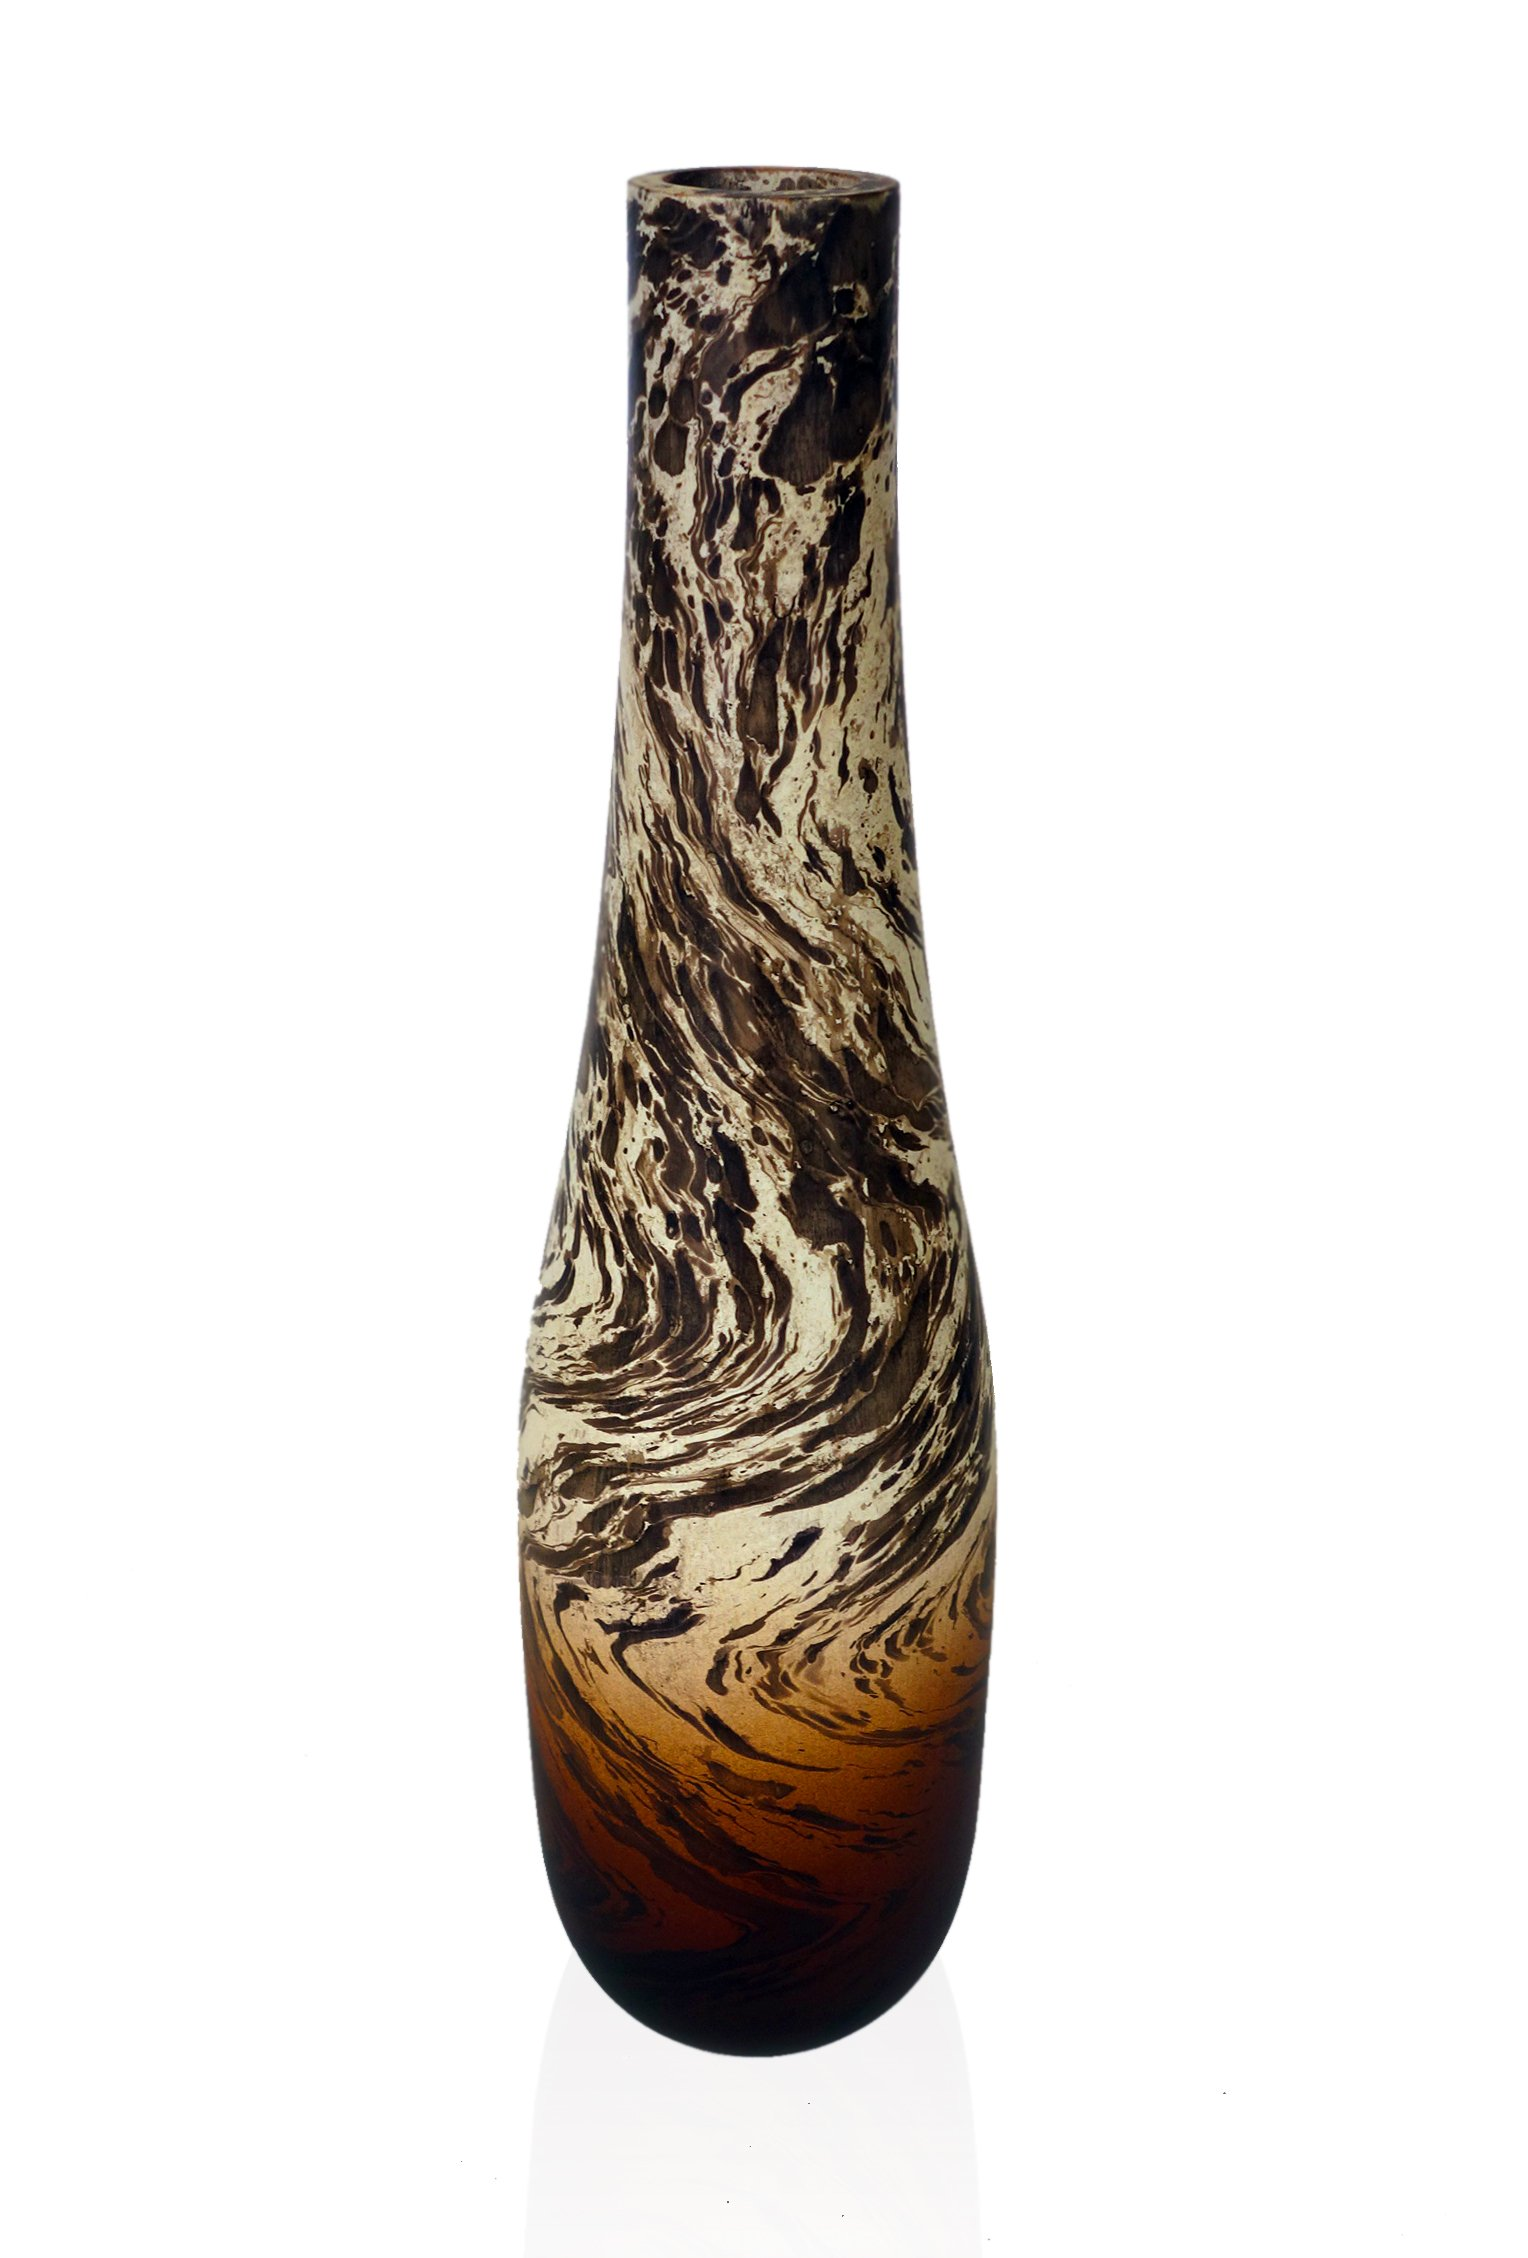 RoRo 14 Inch Handmade Tear-Drop Mango Wood Vase with Oil Swirl Stain